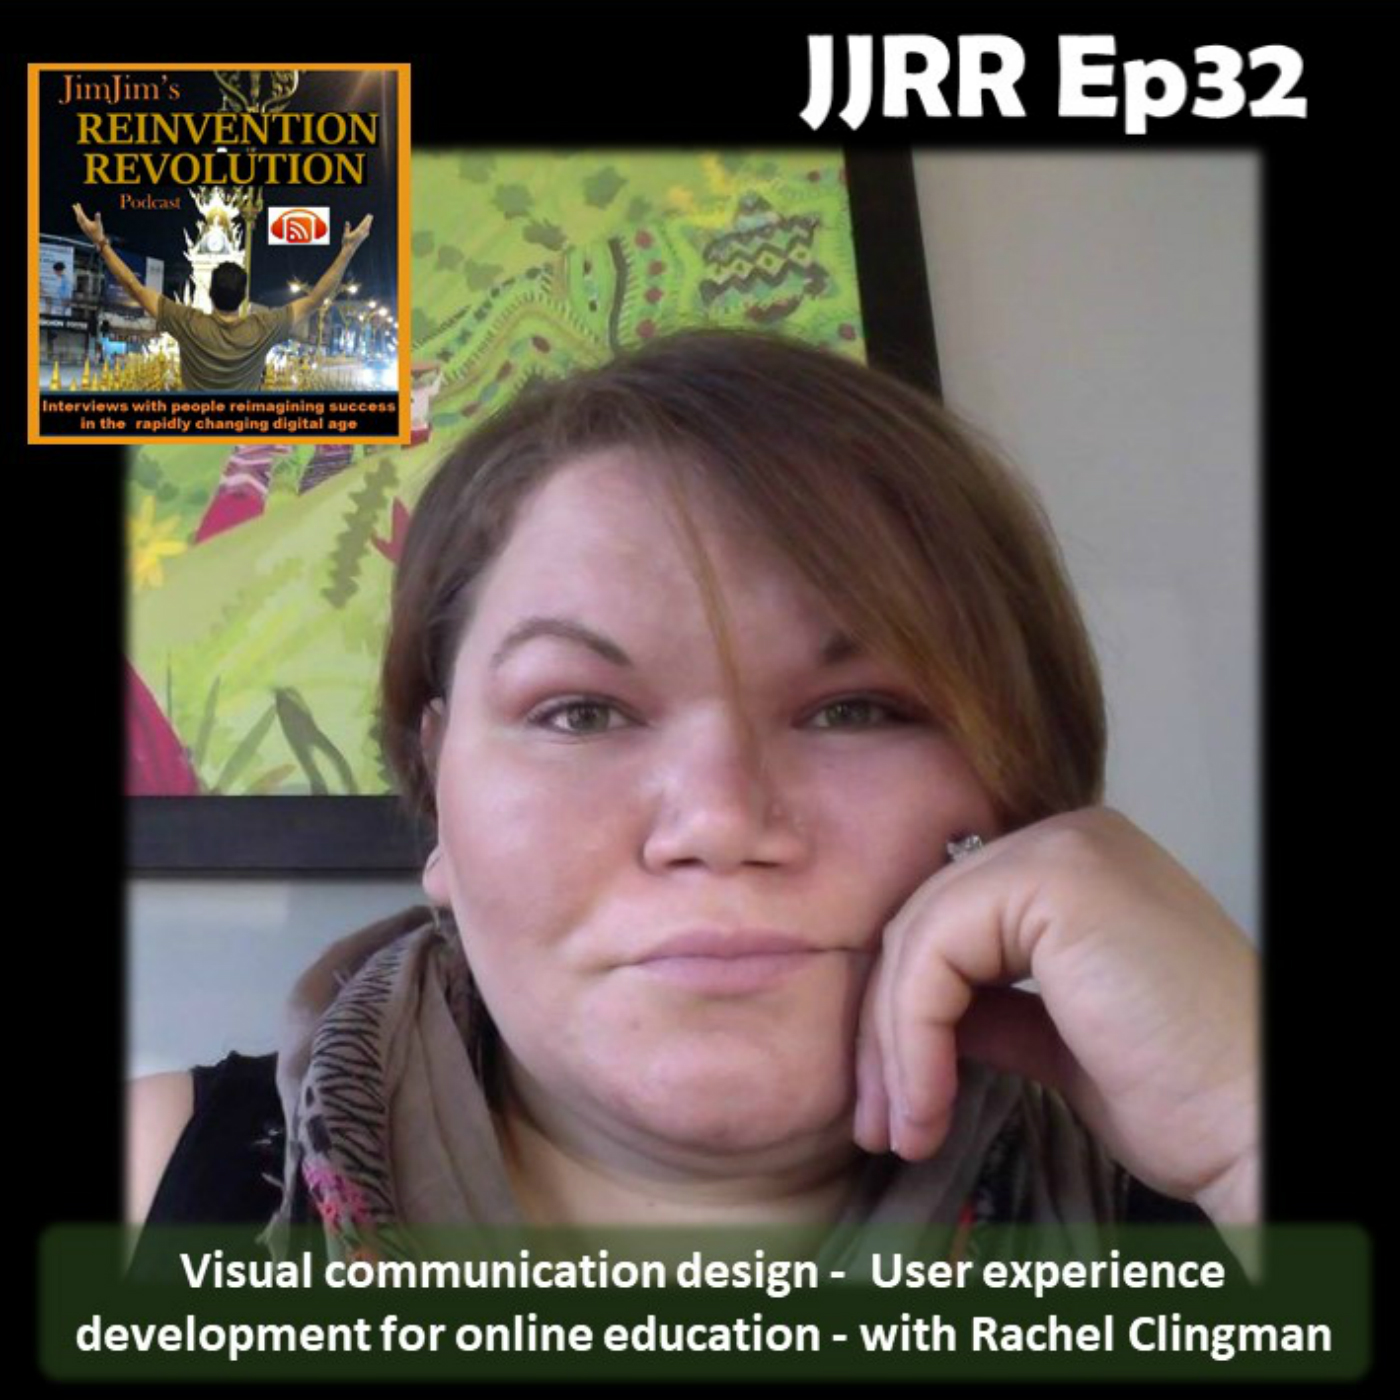 JJRR Ep32 Visual communication design – User experience development for online education – with Rachel Clingman